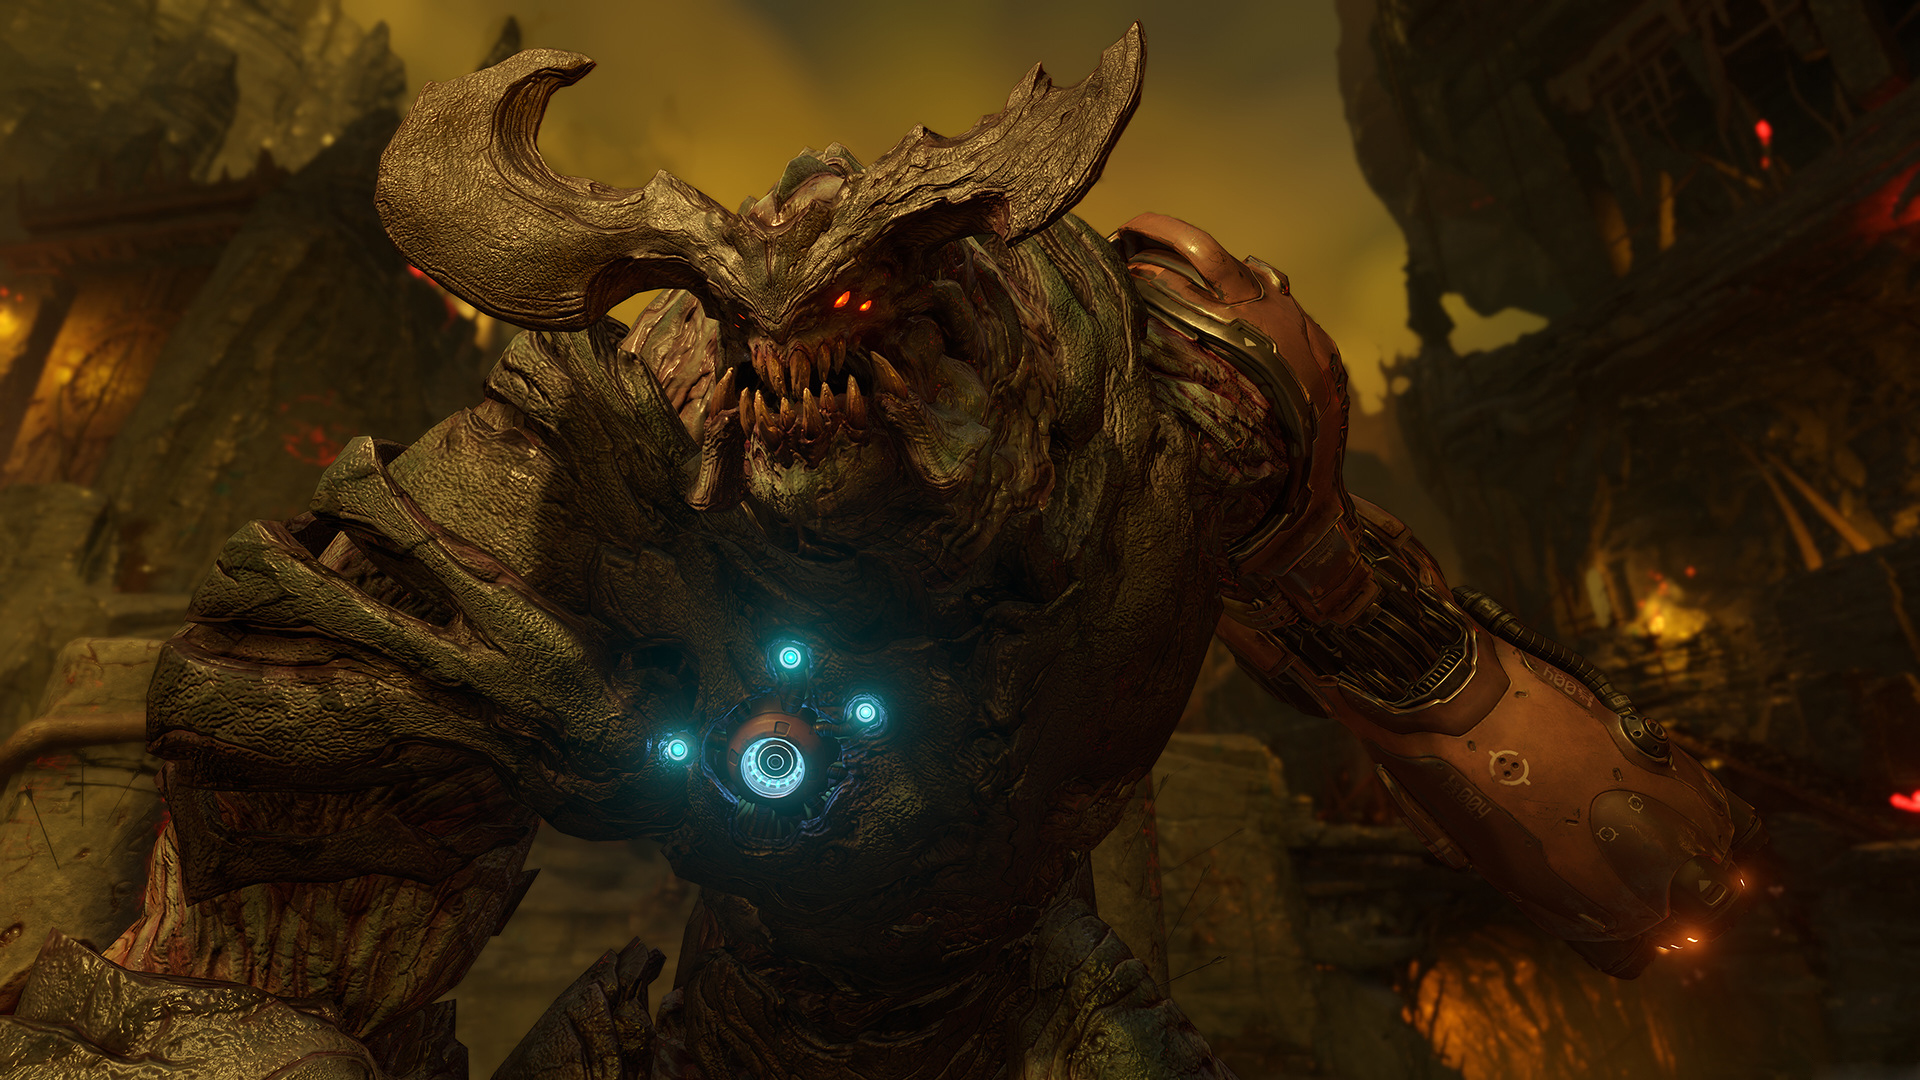 New Screenshots From DOOM - 2015-07-24 12:44:52